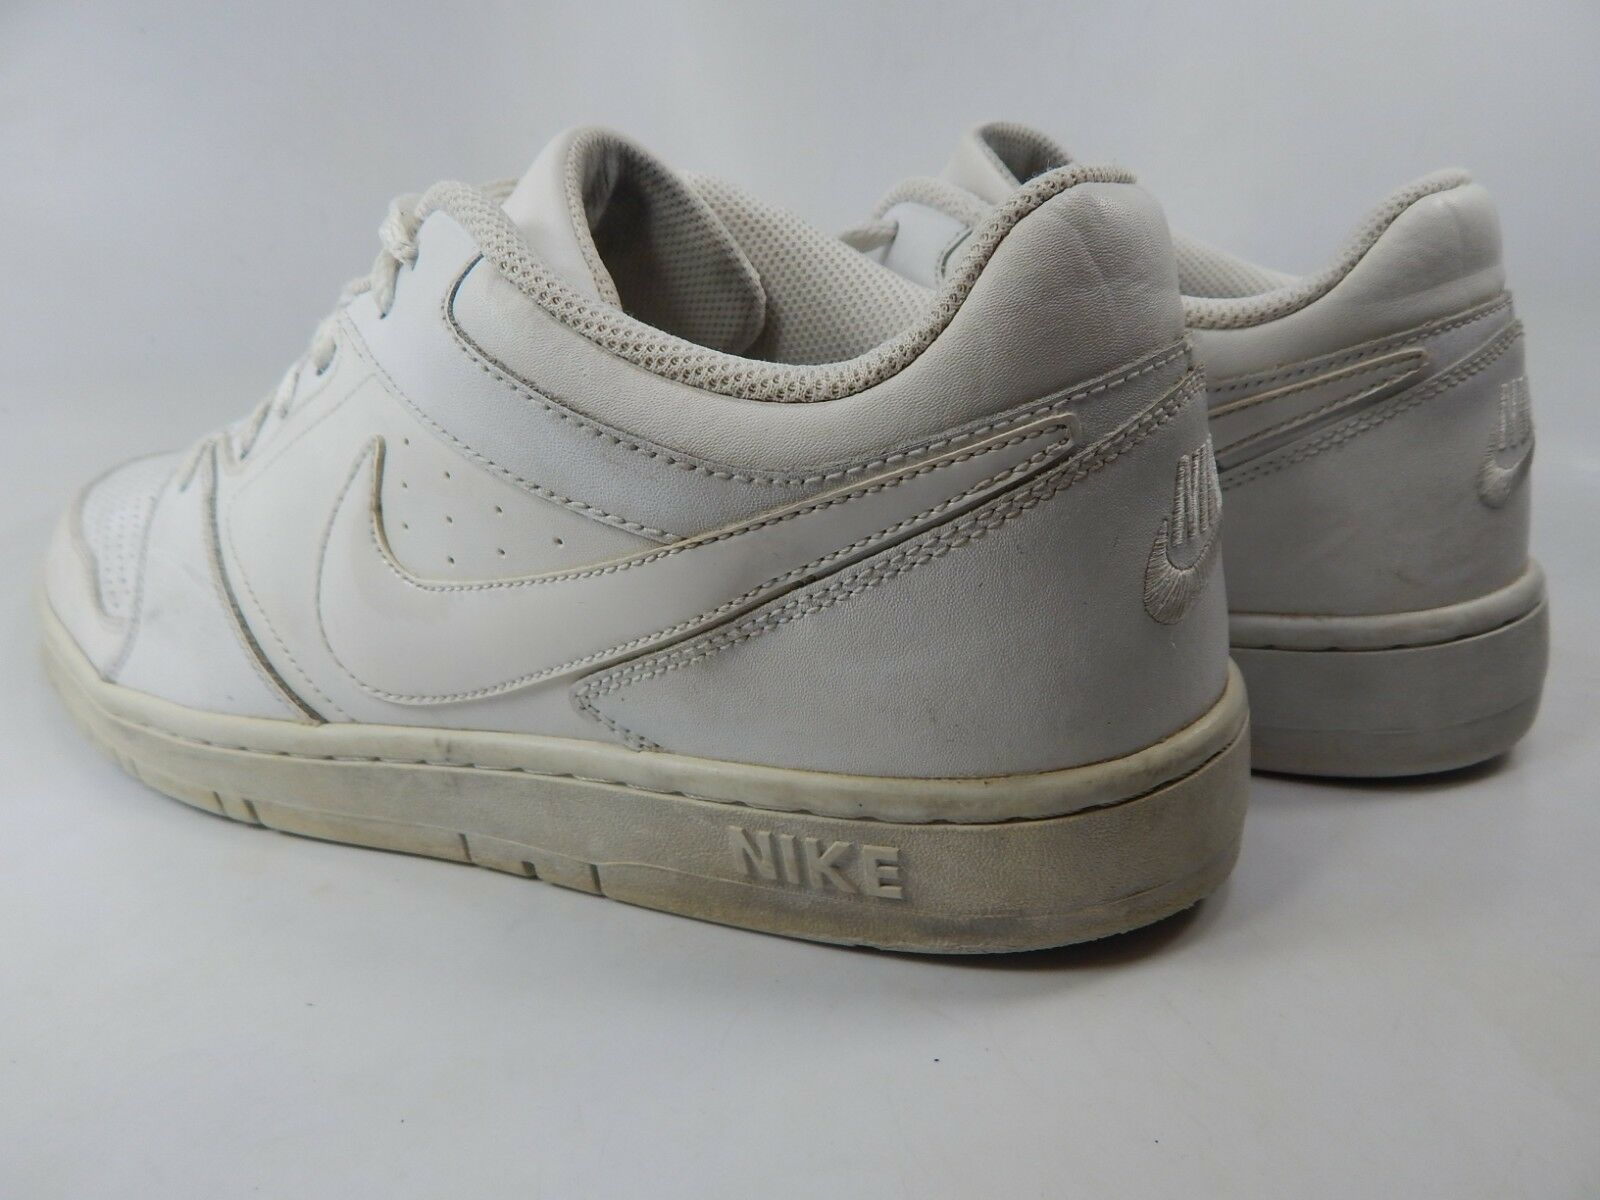 Nike Prestige IV Low Classic US 13 M (D) EU 47.5 Men's Sneakers Shoes 488428